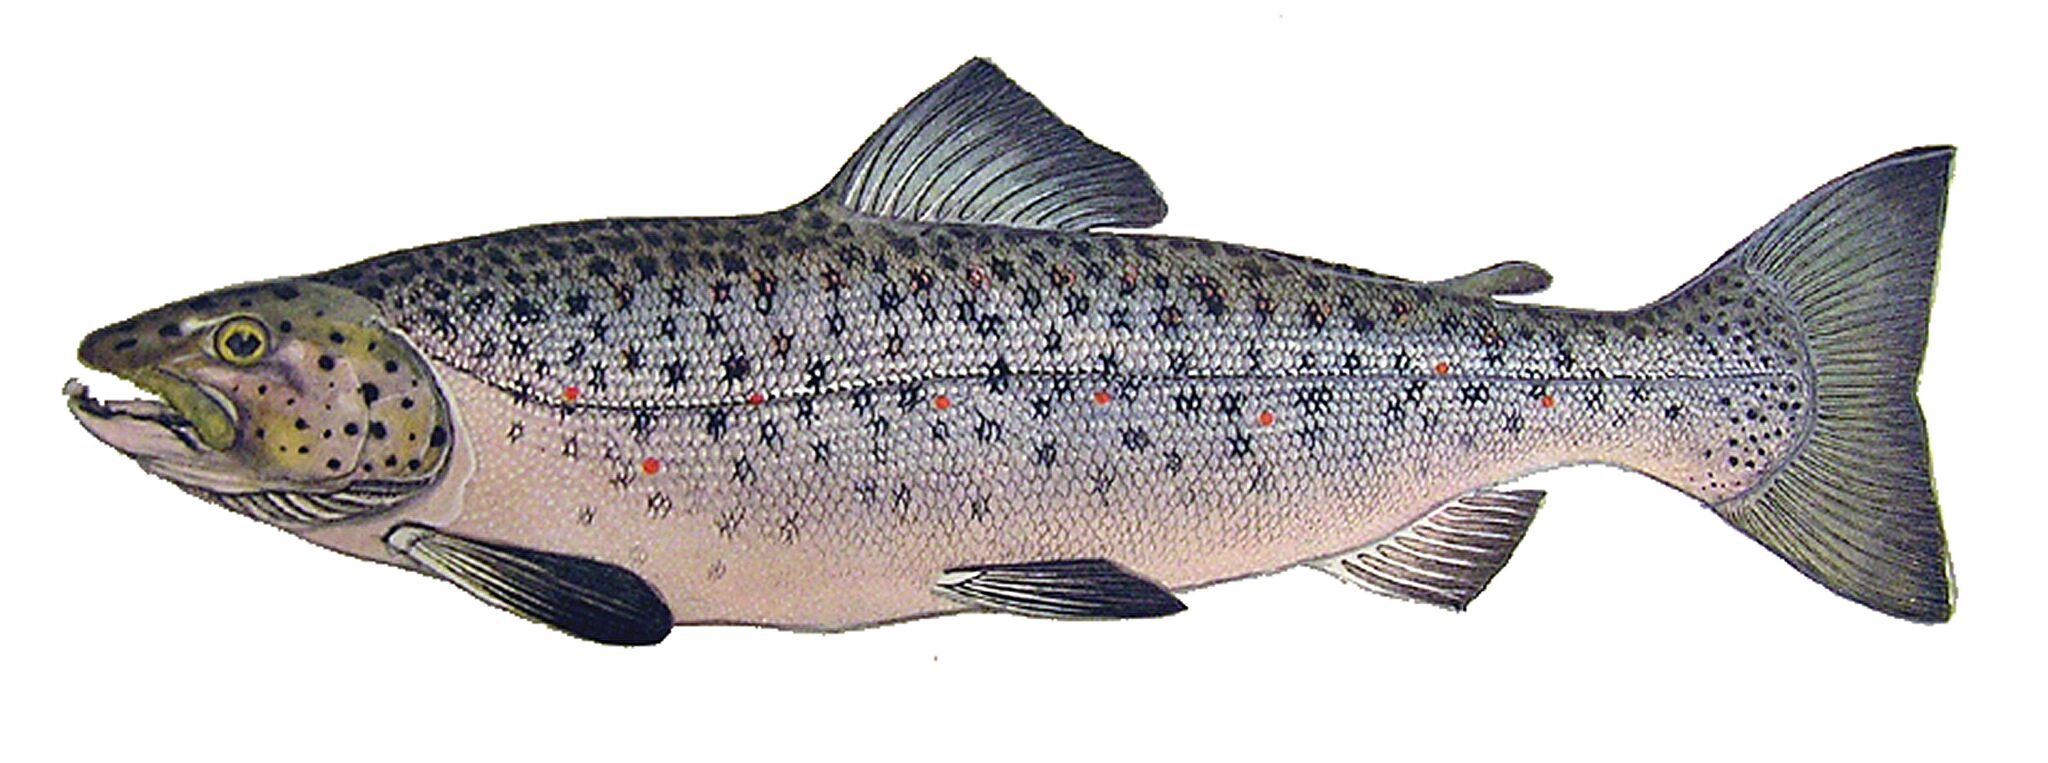 Presumpscot River Fish